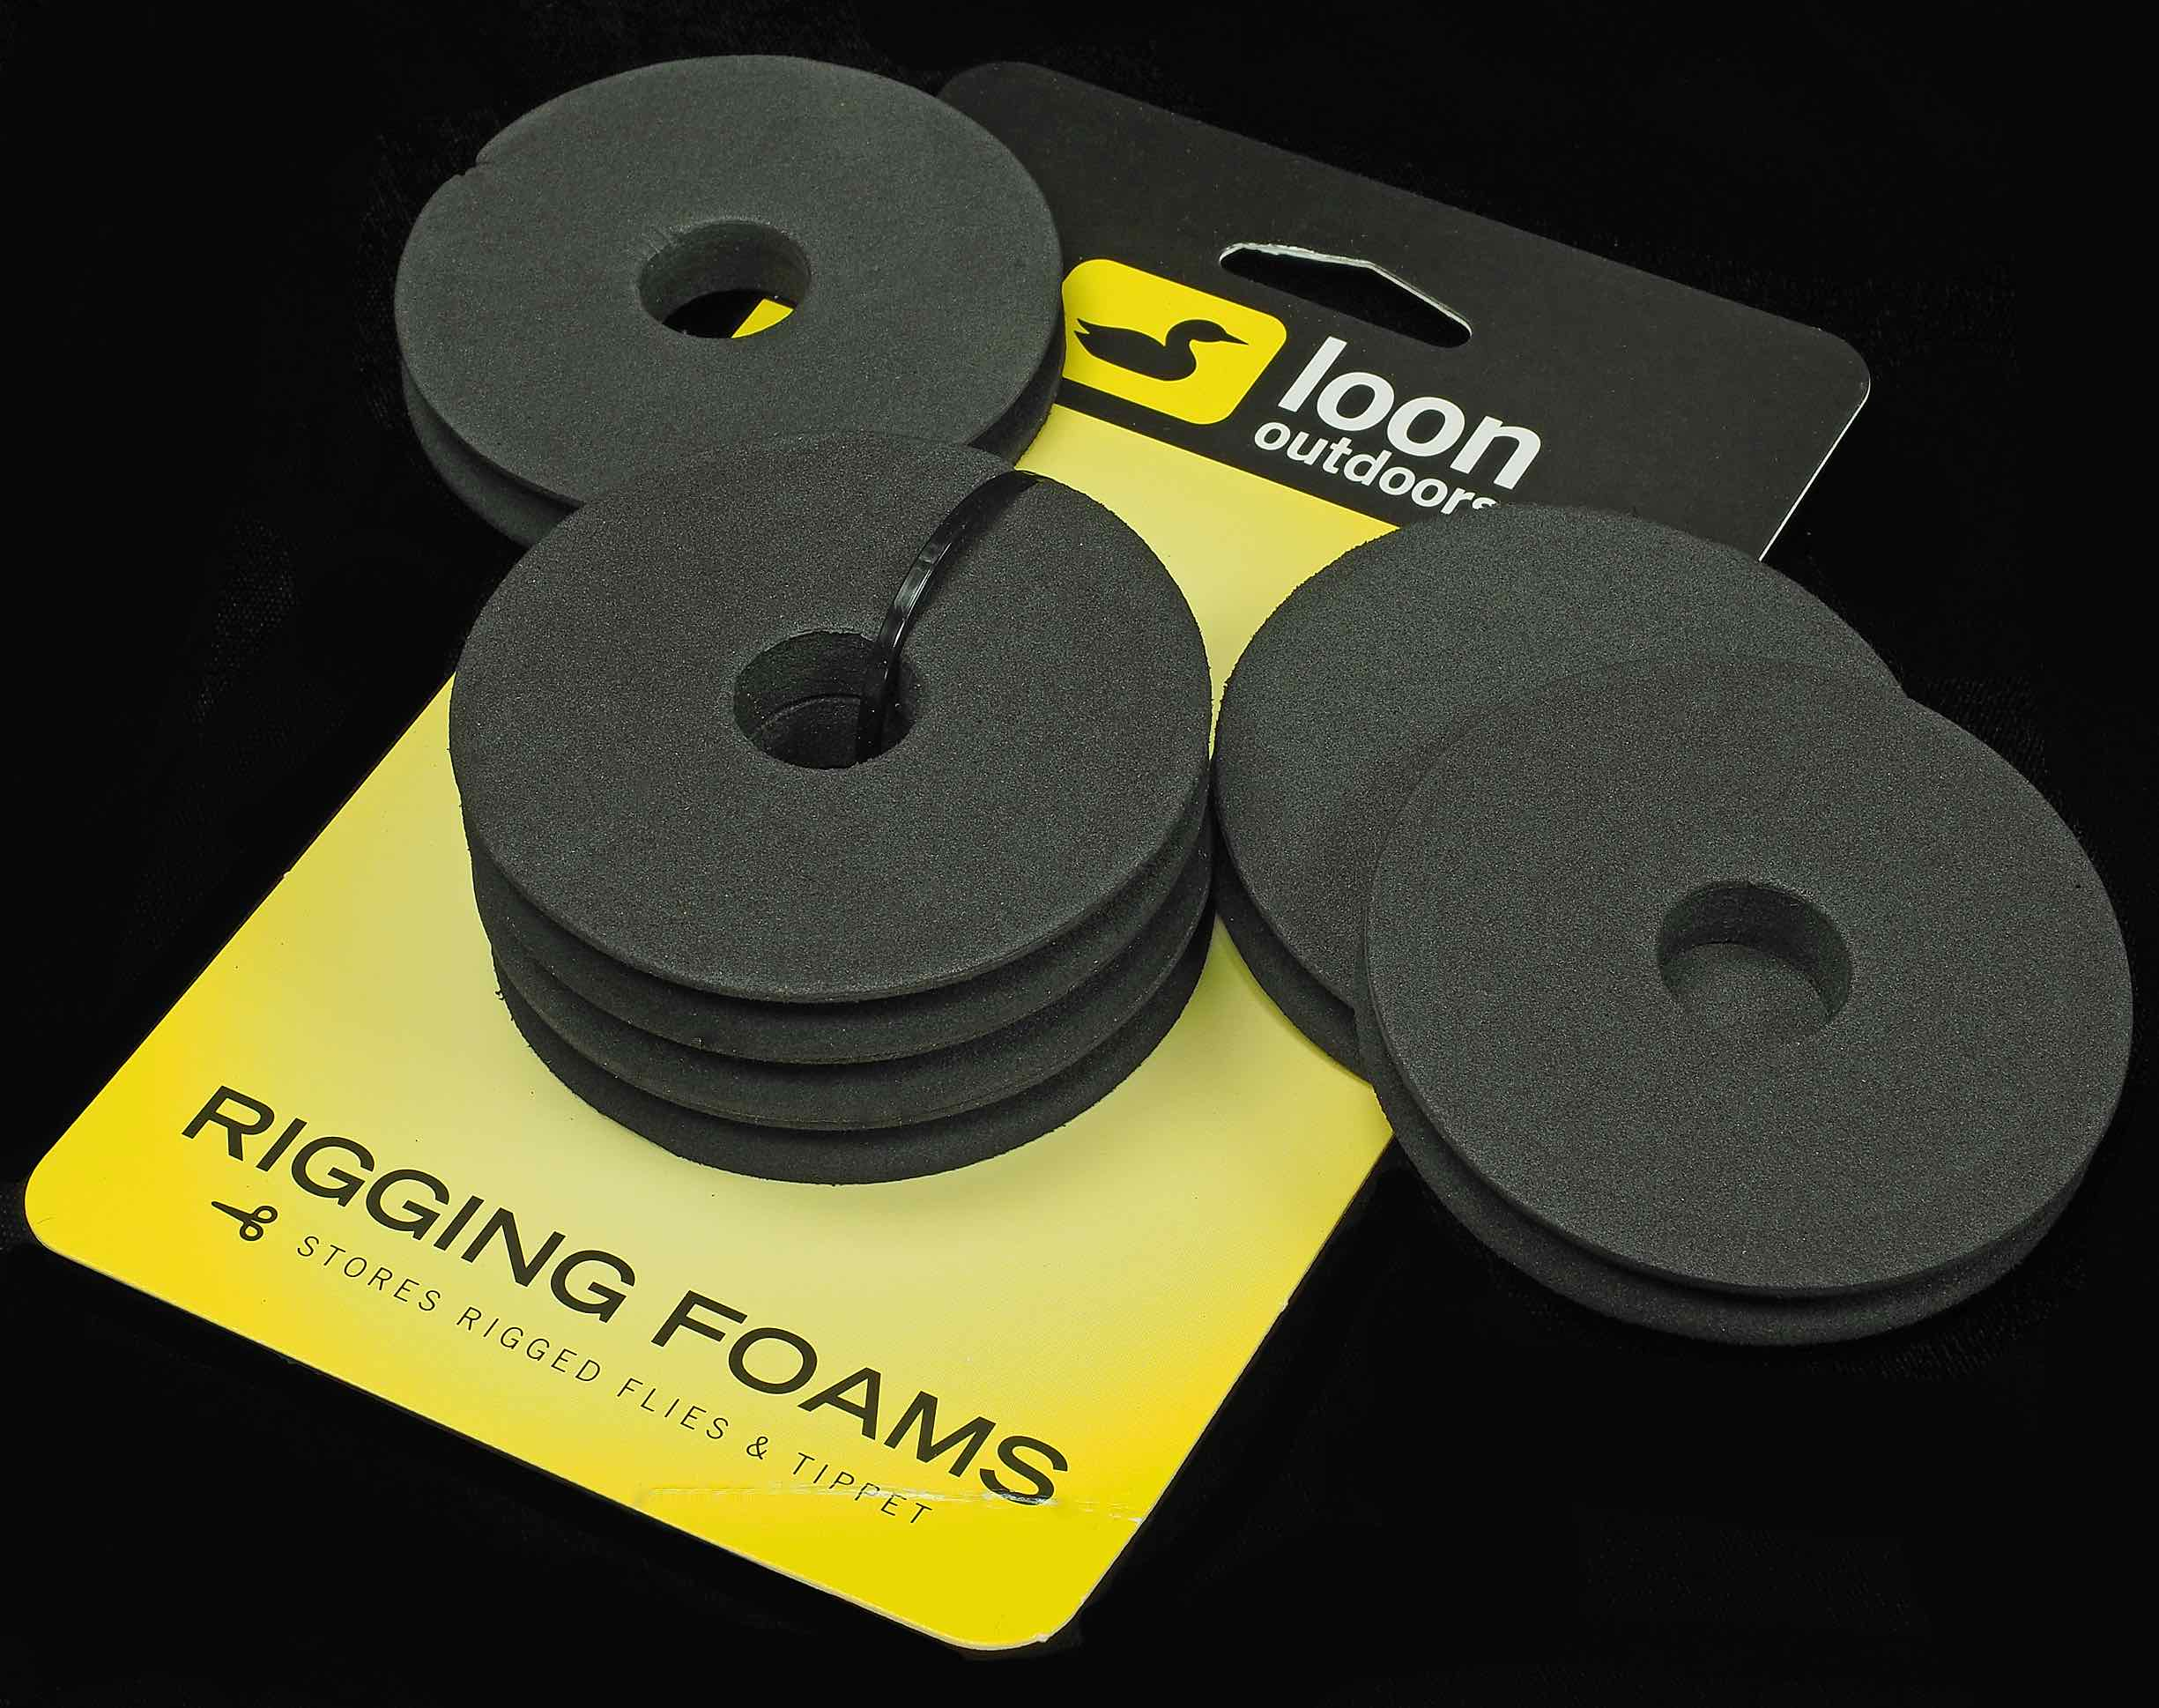 Loon Rigging Foams